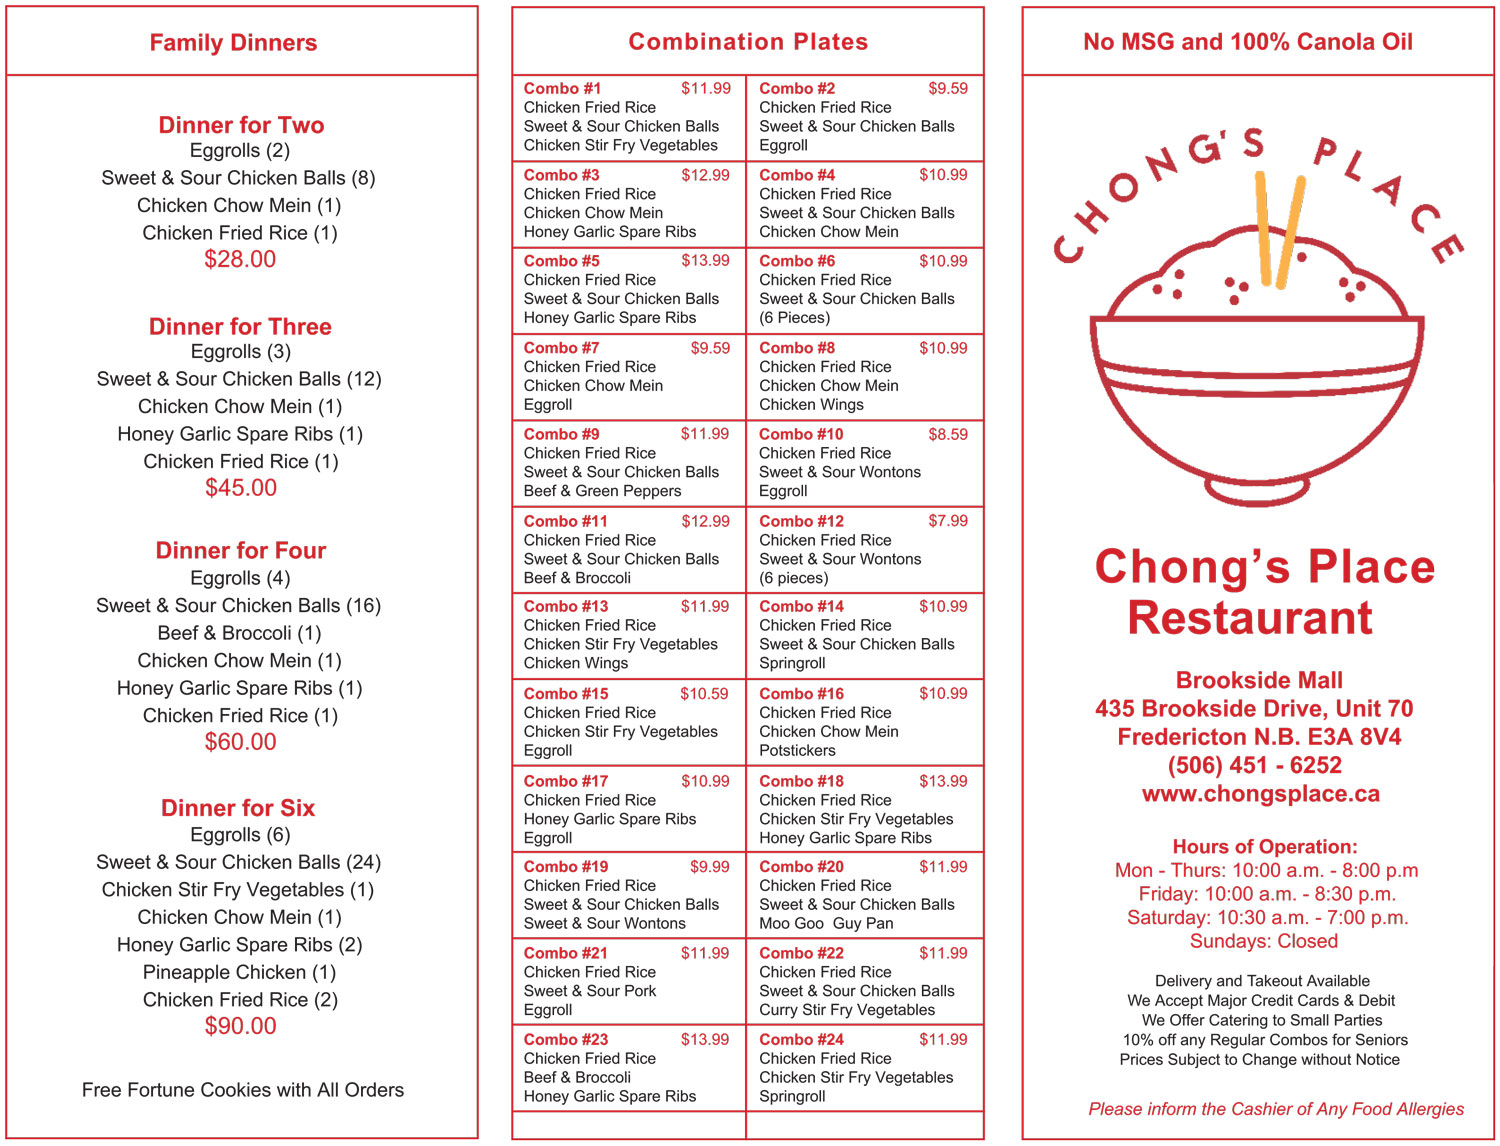 Chong - New Menu - June 2020 - p. 1